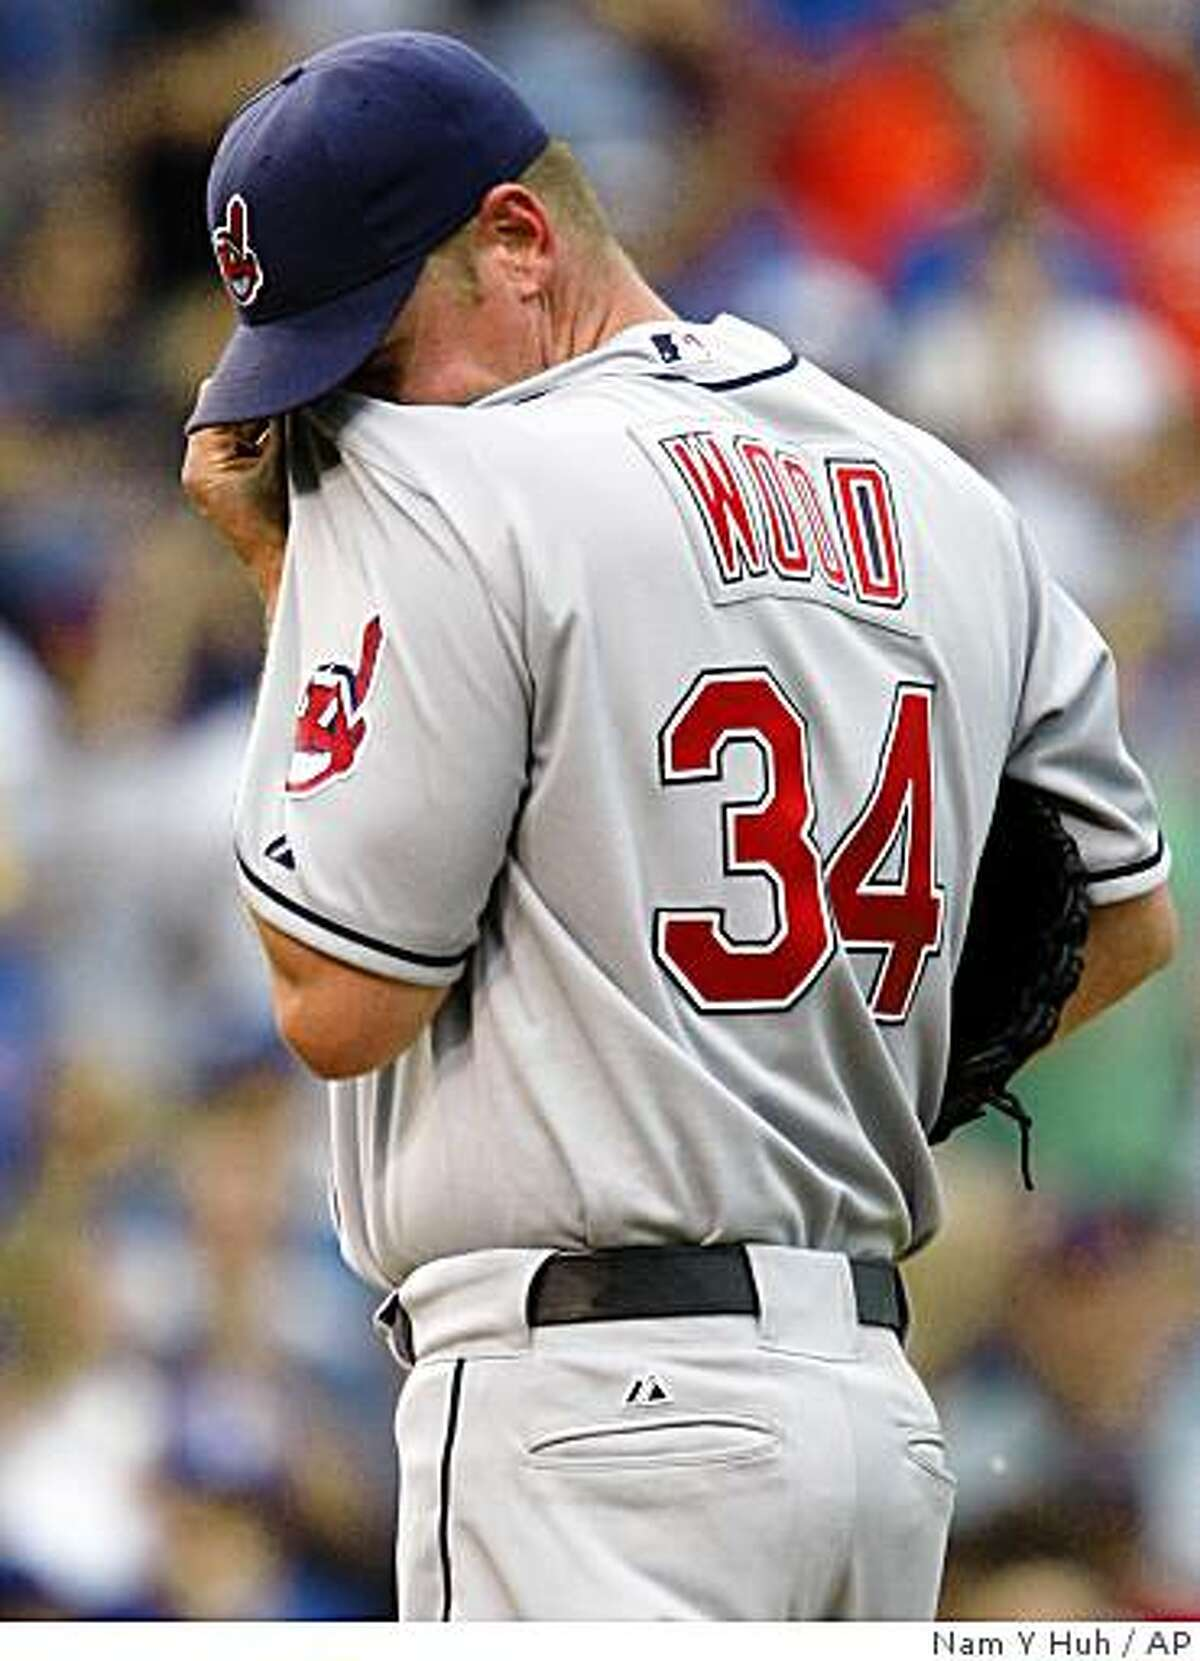 Cleveland Indians relief pitcher Kerry Wood wipes his face during the ninth inning of an interleague baseball game against the Chicago Cubs in Chicago, on Friday, June 19, 2009. The Cubs won 8-7 in 10 innings.(AP Photo/Nam Y. Huh)